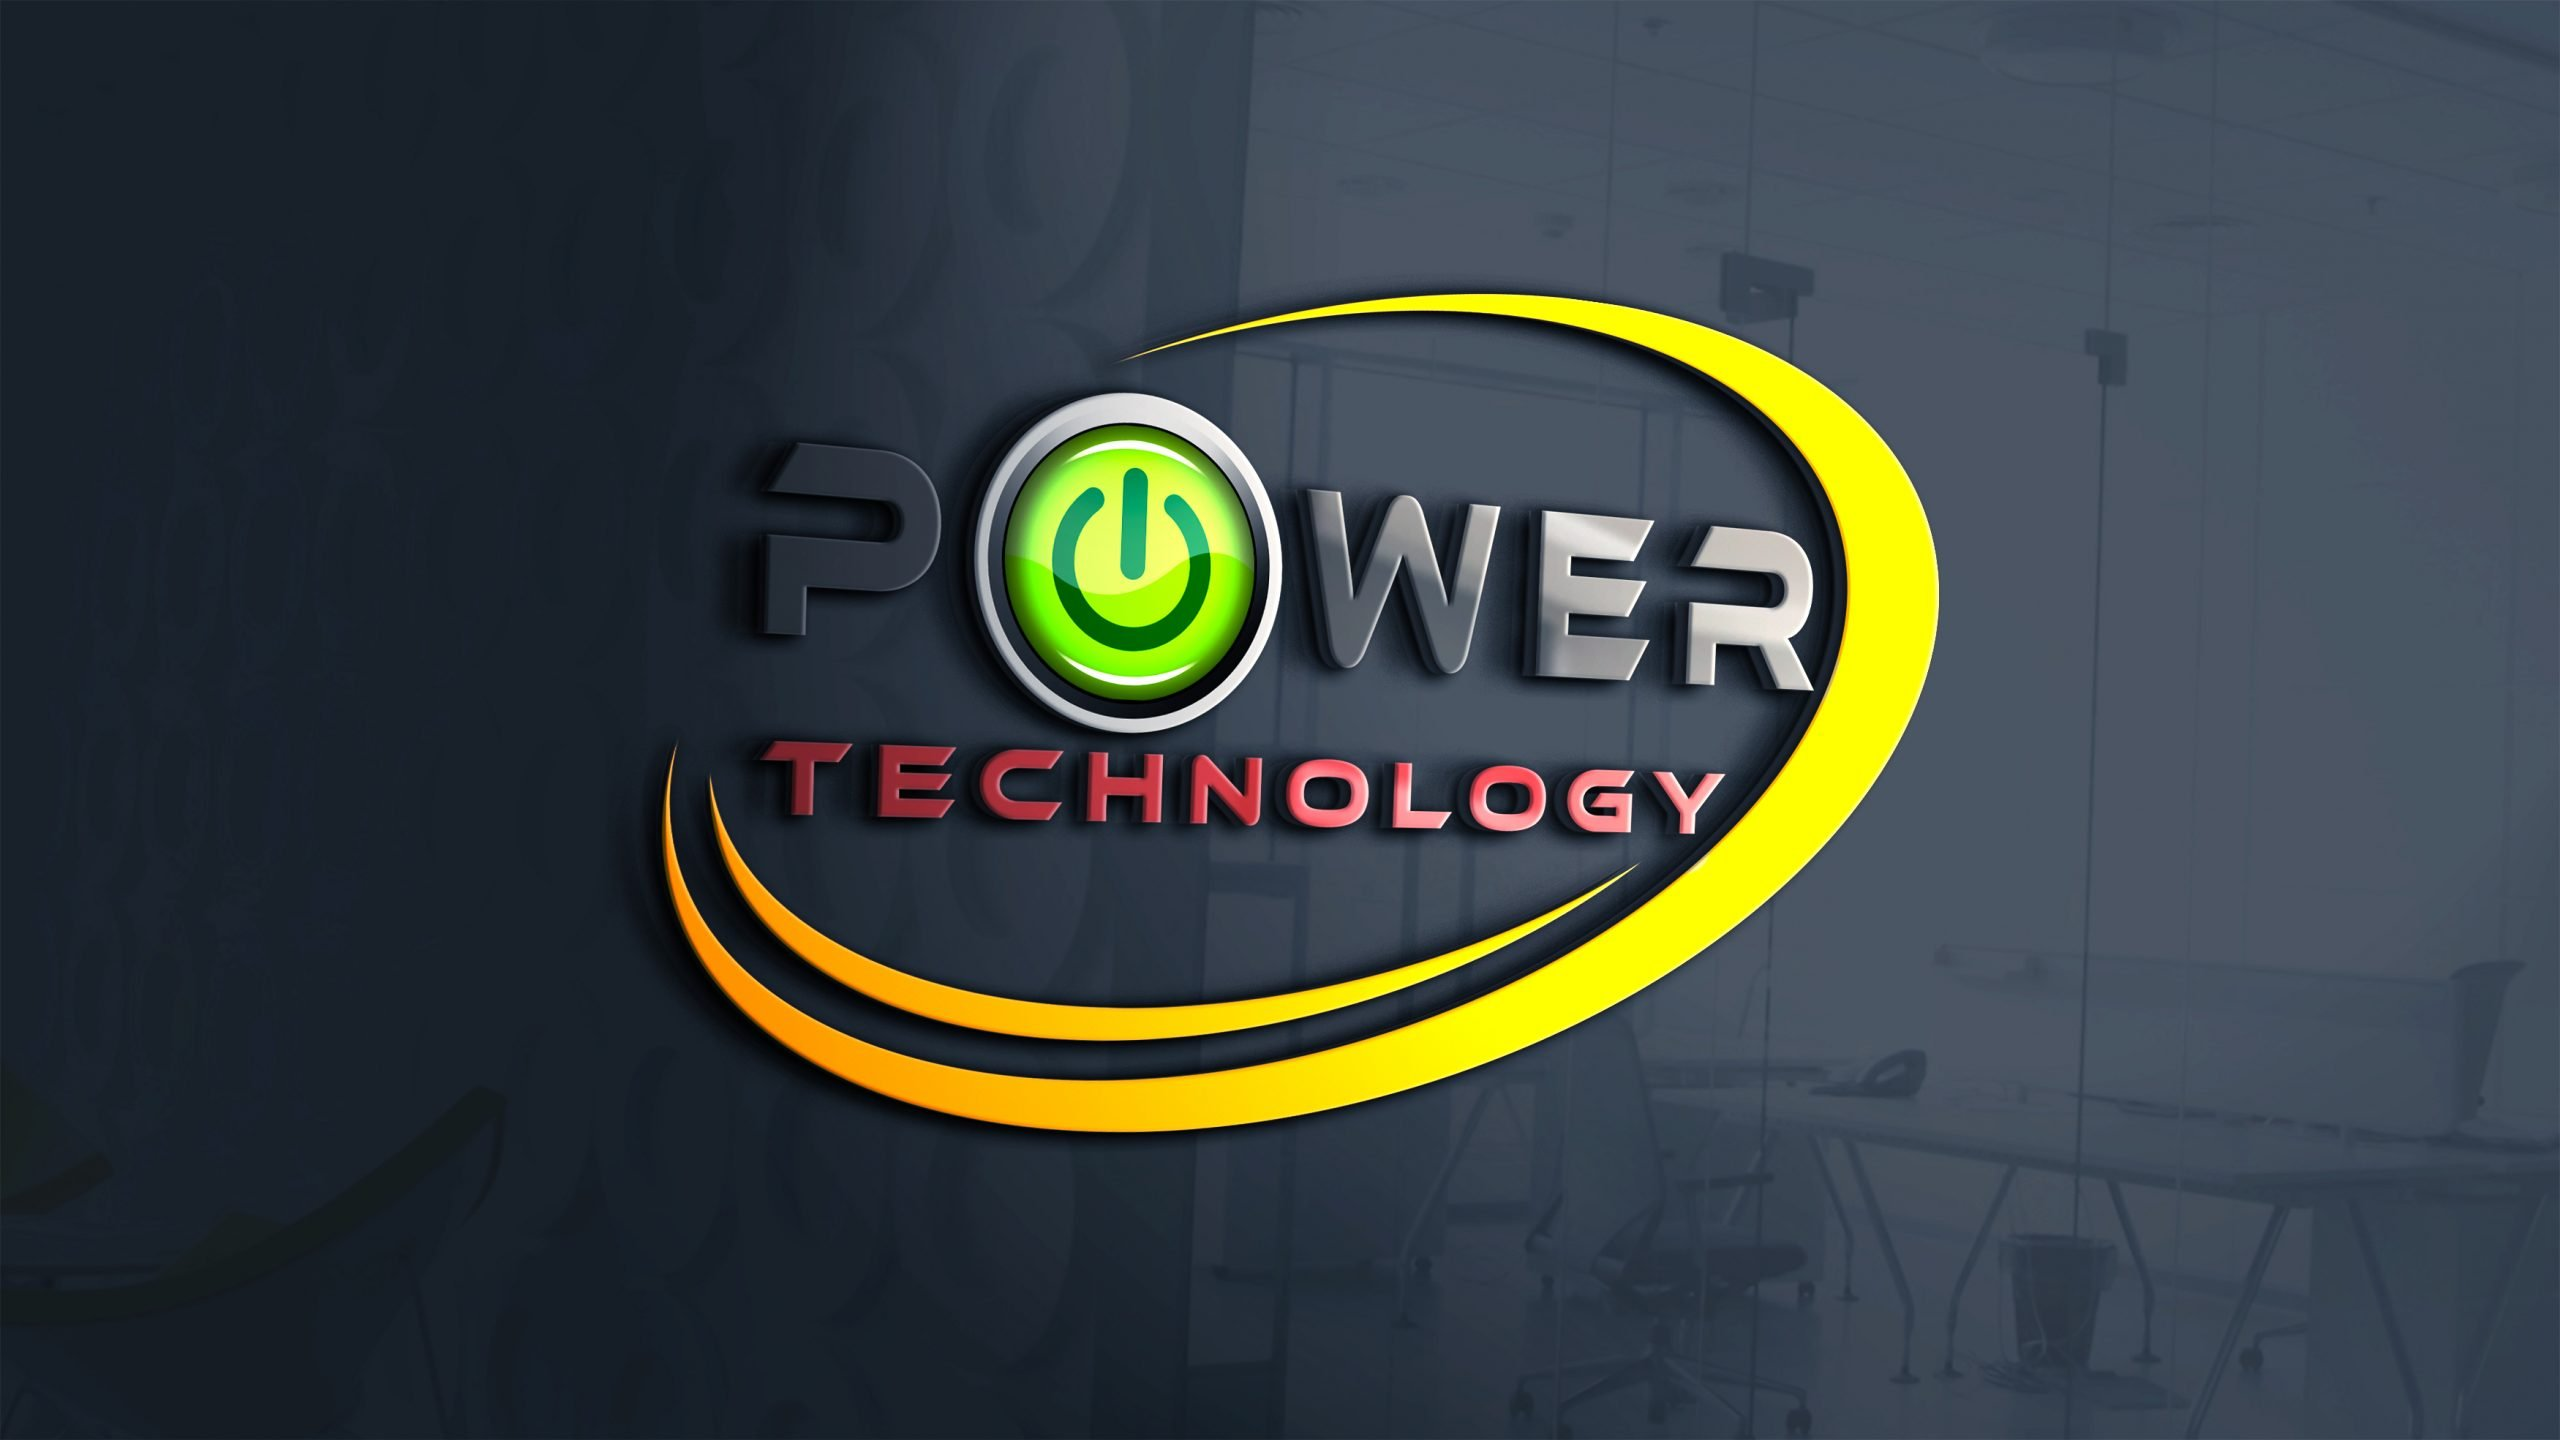 modern power and technology logo design free psd modern power and technology logo design